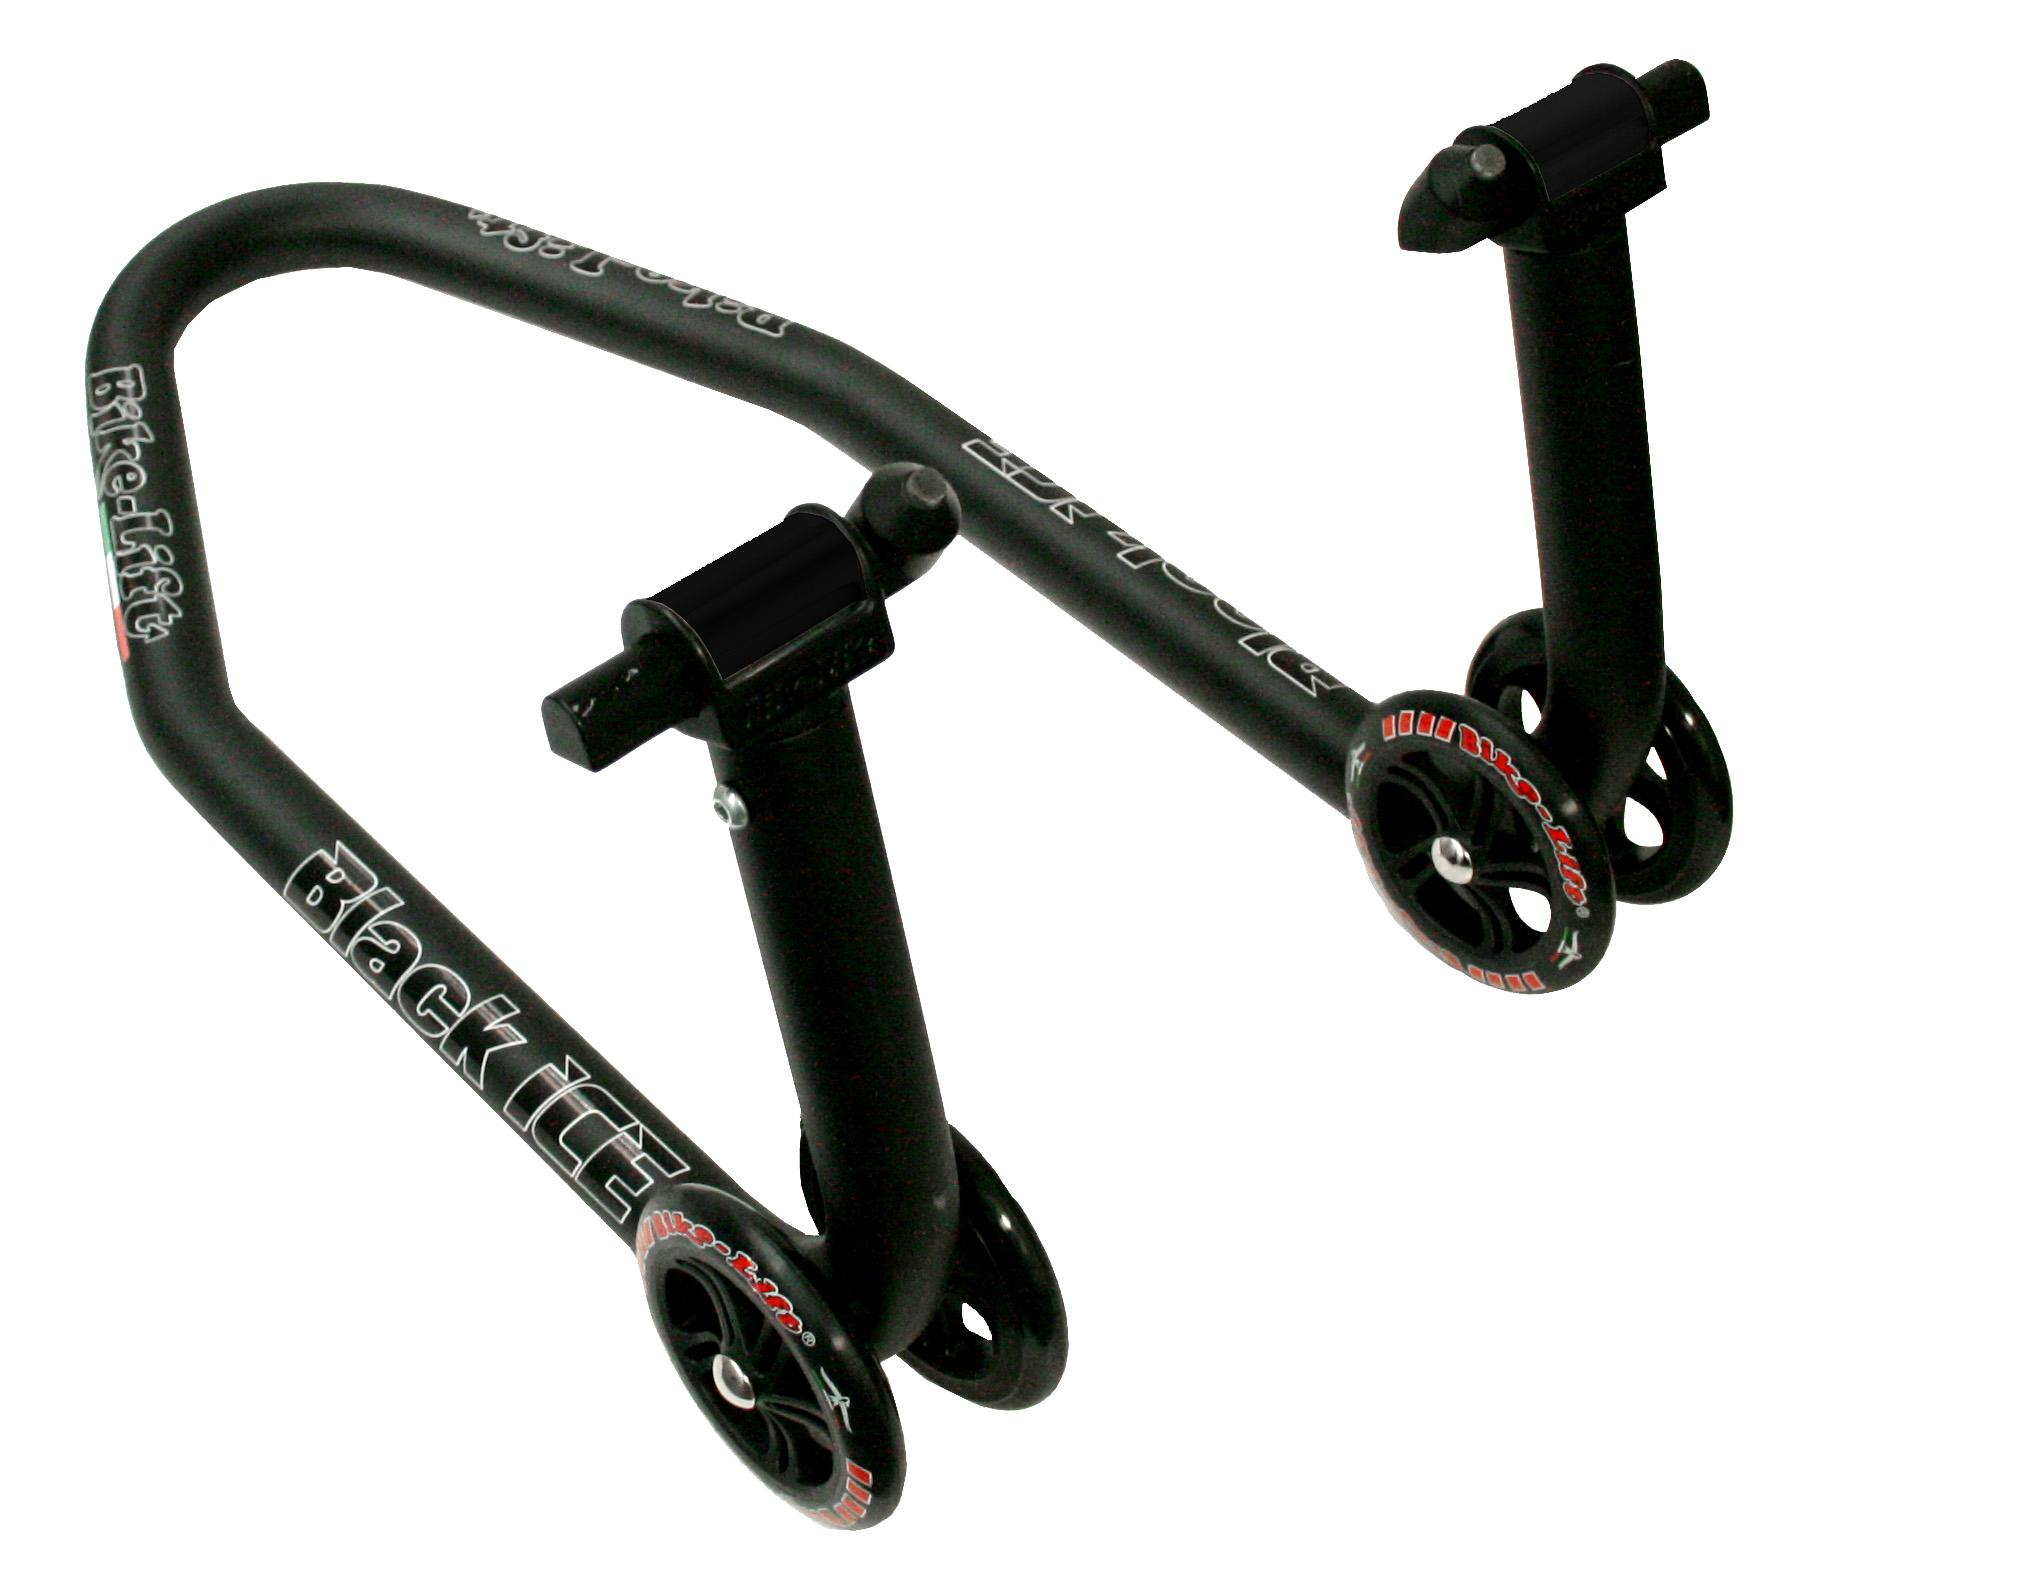 CAVALLETTO MOTO ANTERIORE BIKE LIFT EUROPE BLACK ICE